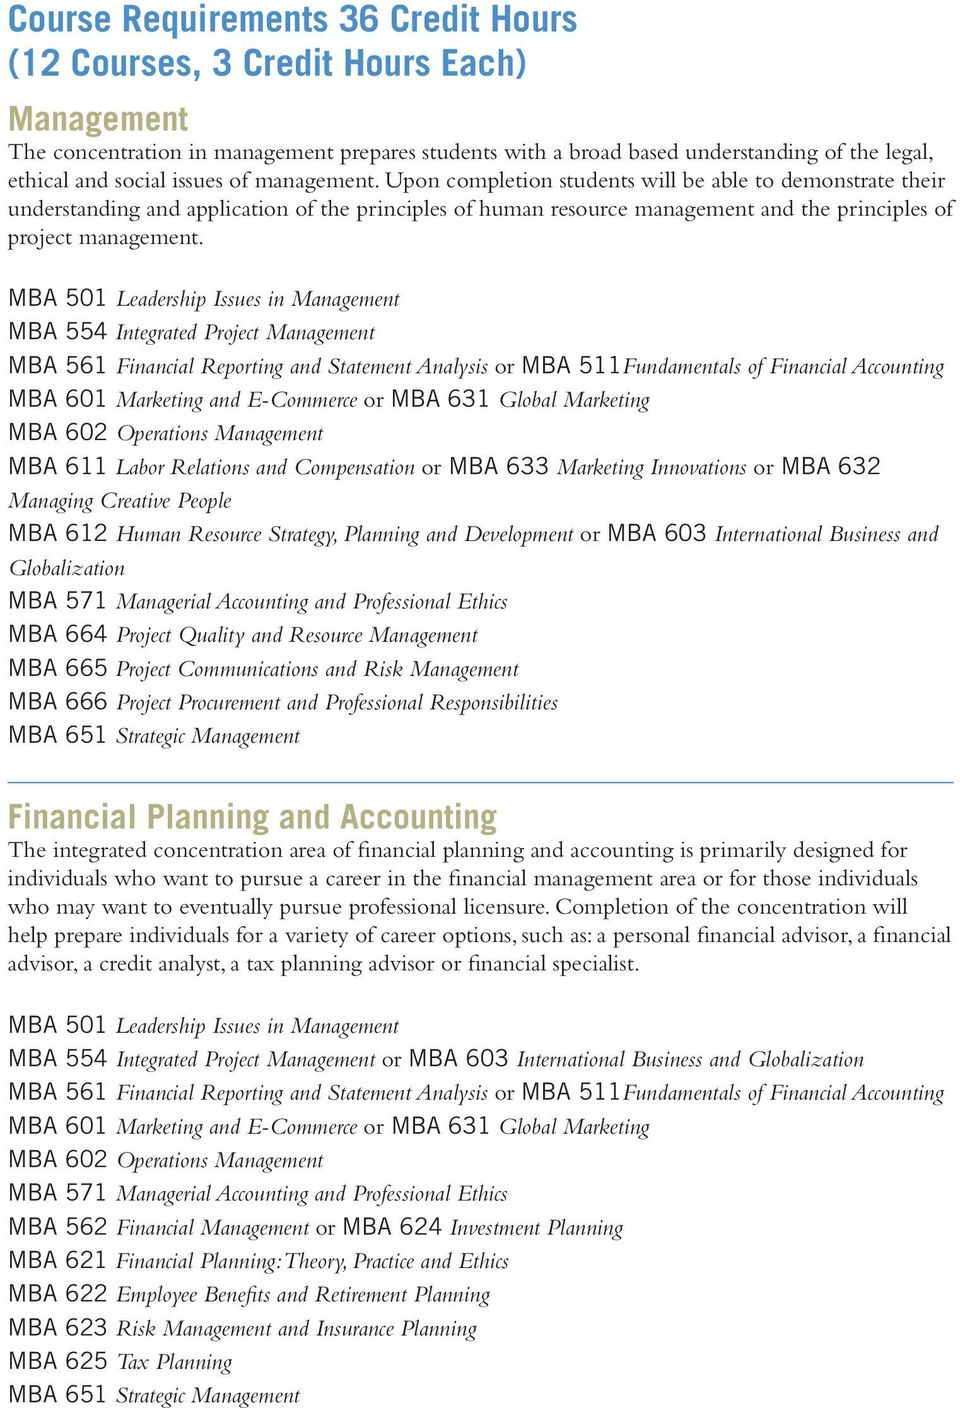 MBA 501 Leadership Issues in Management MBA 554 Integrated Project Management MBA 561 Financial Reporting and Statement Analysis or MBA 511Fundamentals of Financial Accounting MBA 601 Marketing and